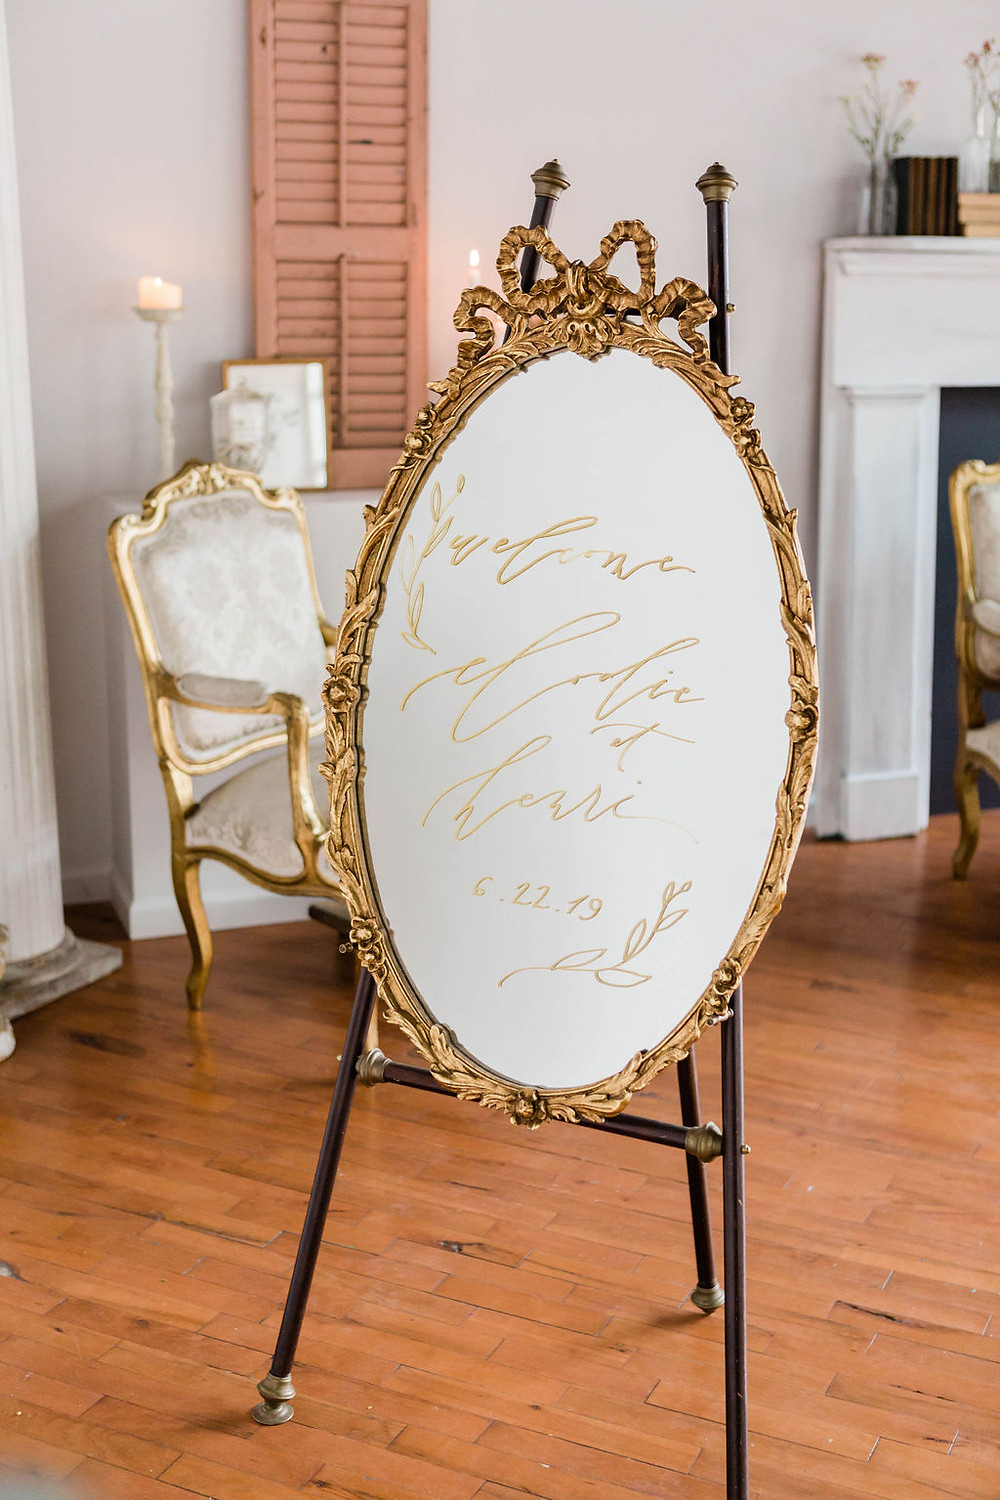 Vintage gold gilt mirror with hand-drawn calligraphy welcome